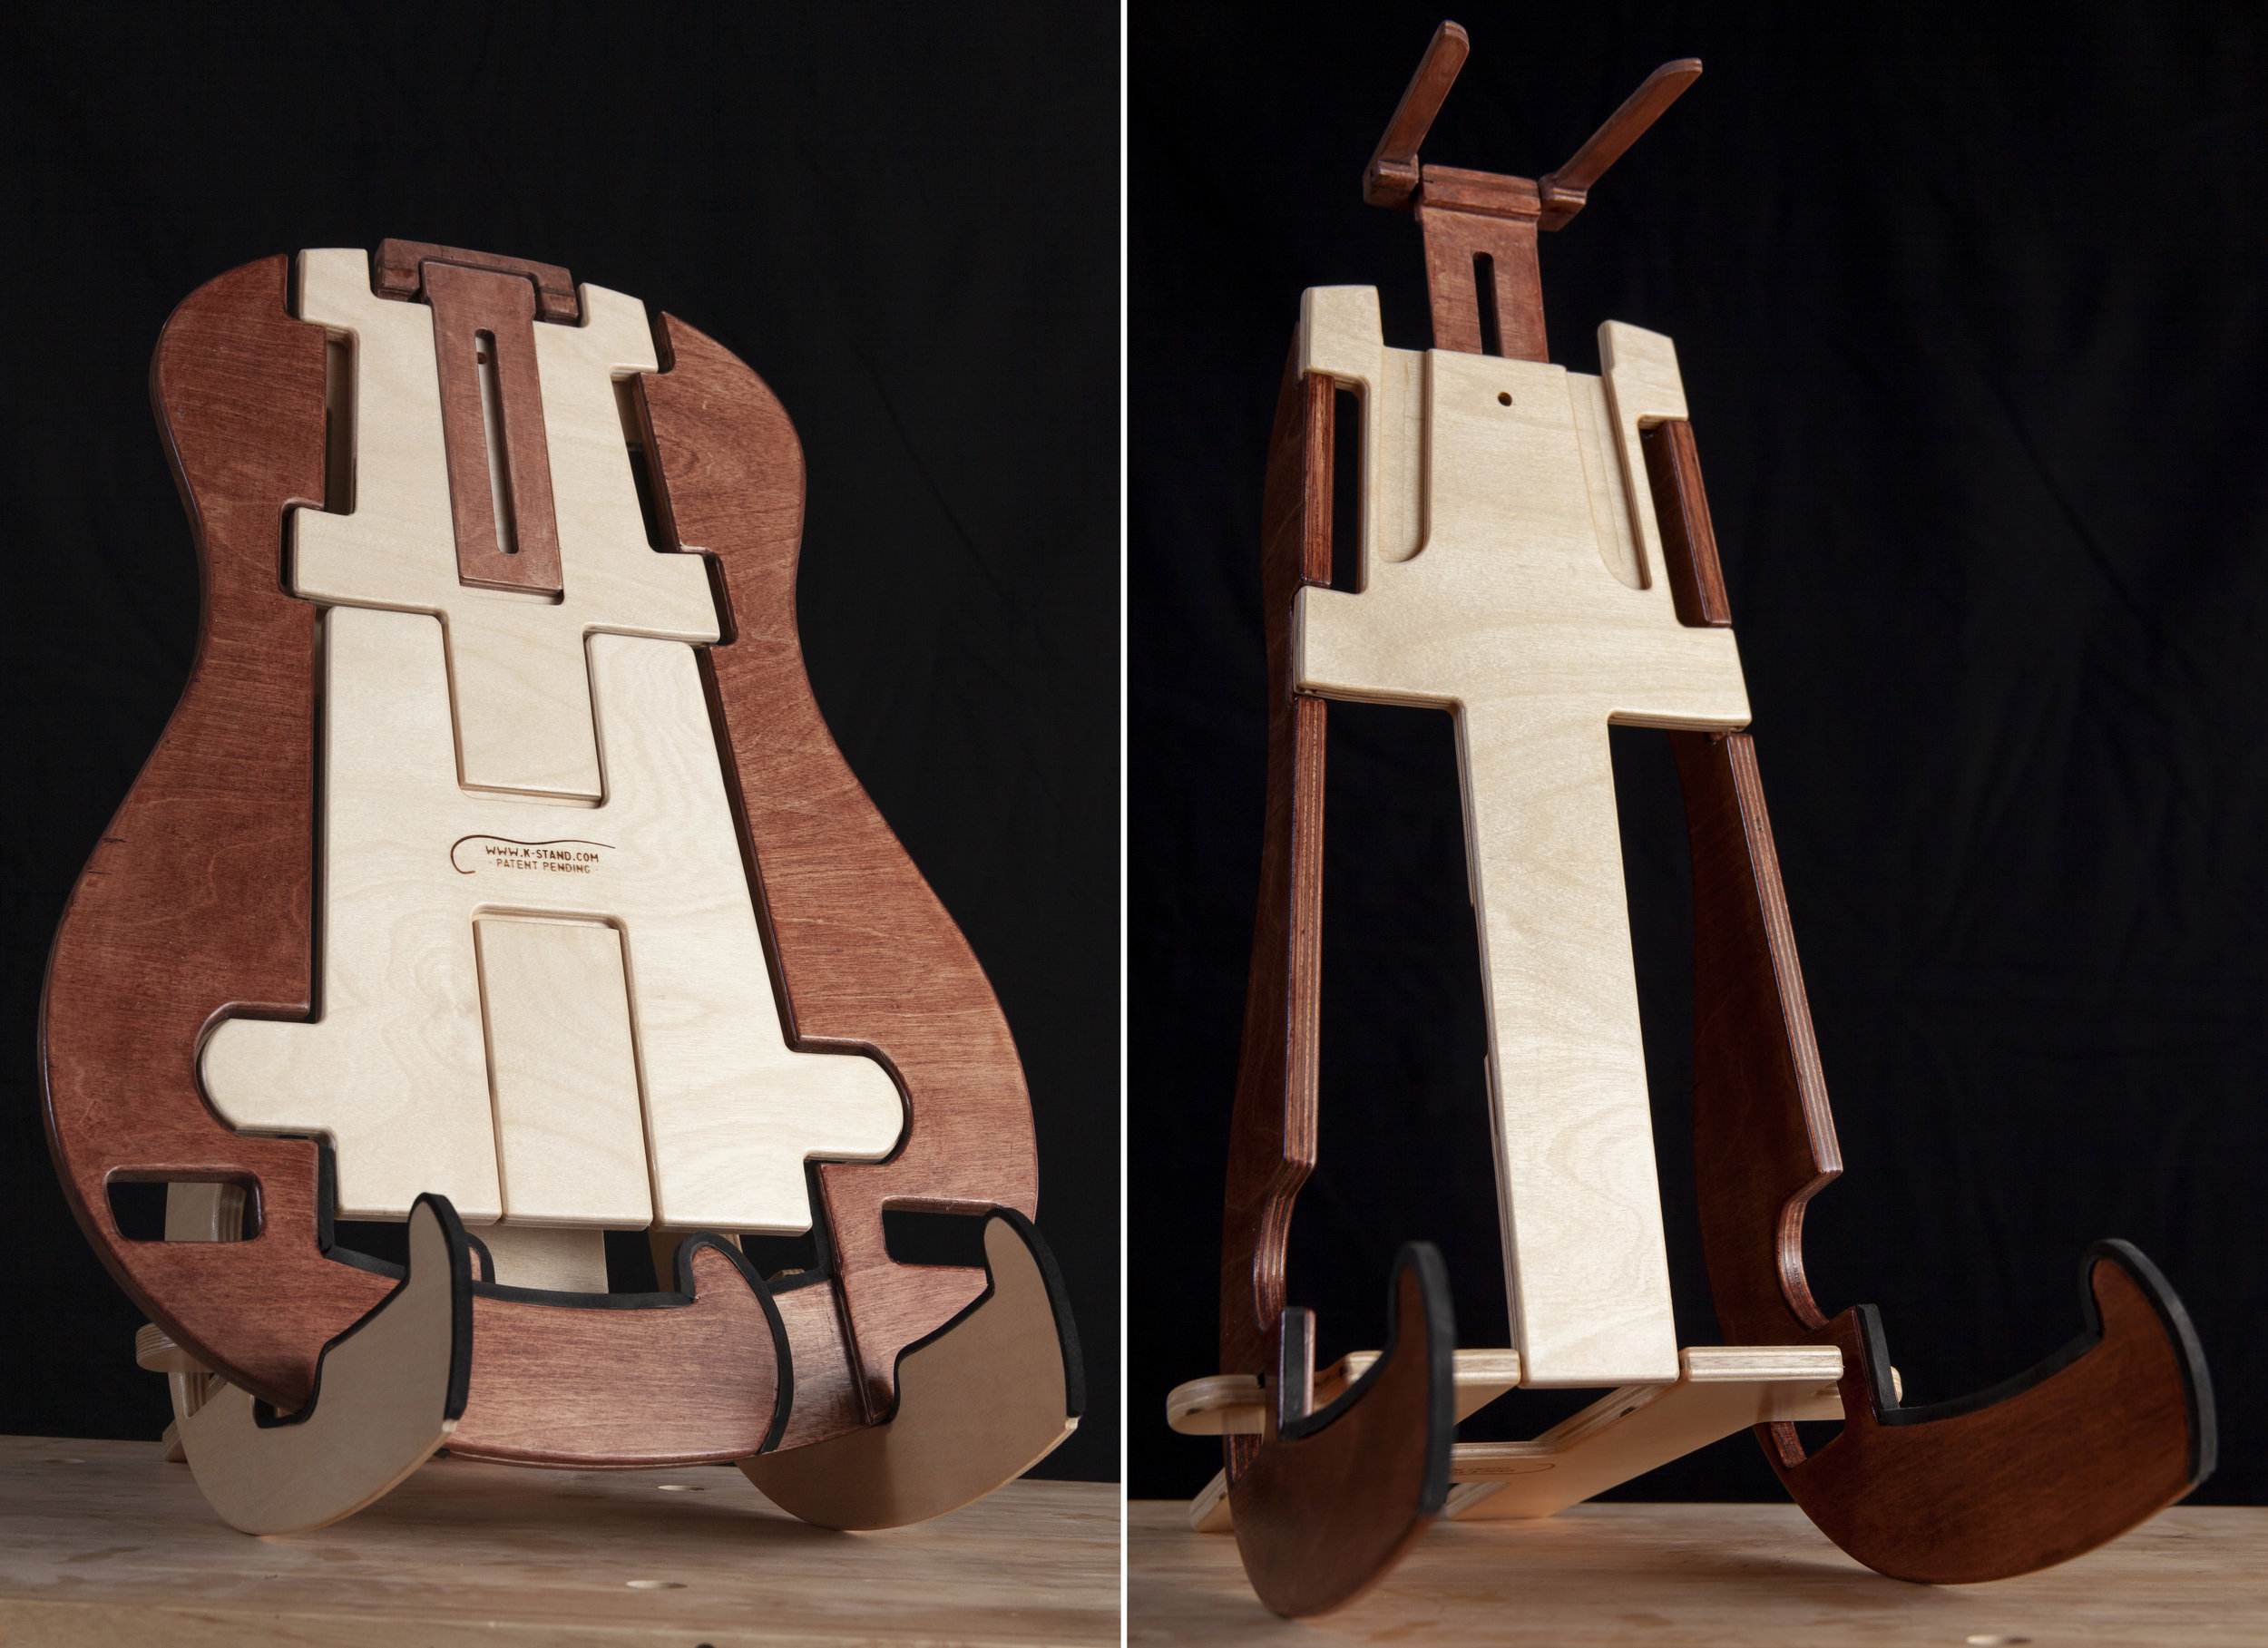 K-Stand for Acoustic Guitar. When flat it is less than a 1/2 inch and unfolds to become a sturdy and attractive instrument stand. Shown on the left is the K-Stand in the flat state (back view) propped up for better viewing and on the right is K-Stand fully open. (photos courtesy of Jesse Koester)